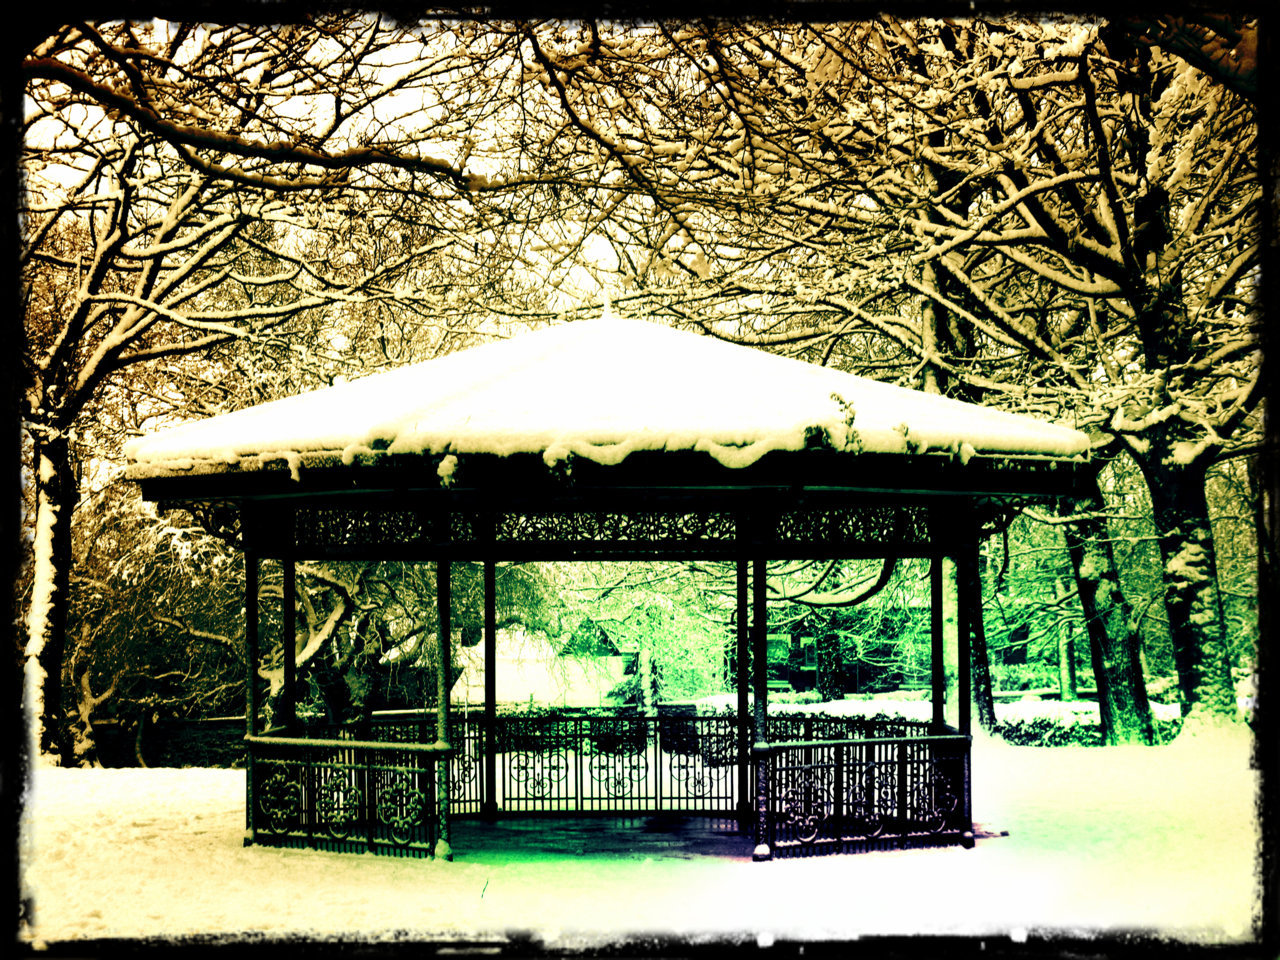 While we are on tinkered photos, here's a pic I took of a wintry bandstand in Burley Park. It's a 2 minute walk from my house in Leeds, and I pass it all the time. This was taken last year after a good dumping of snow, and it hasn't looked as good since!